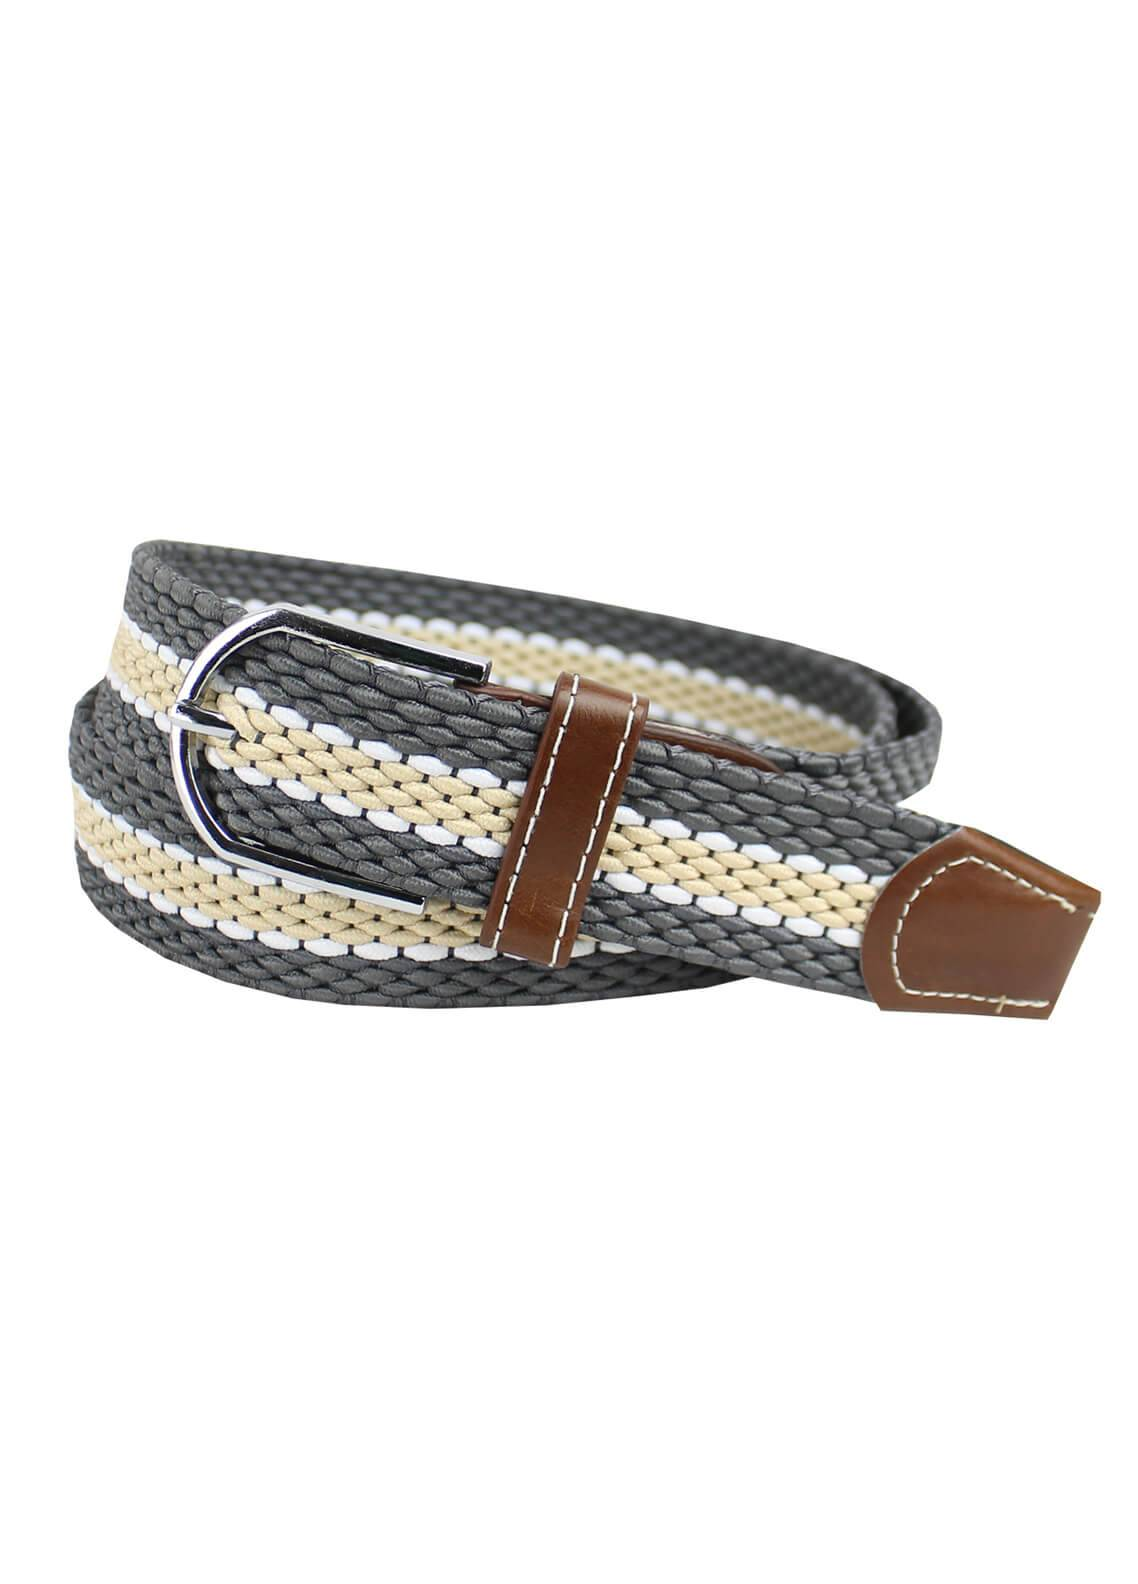 Shahzeb Saeed Textured Leather Men Belts BELT-138 Grey & fawn - Casual Accessories